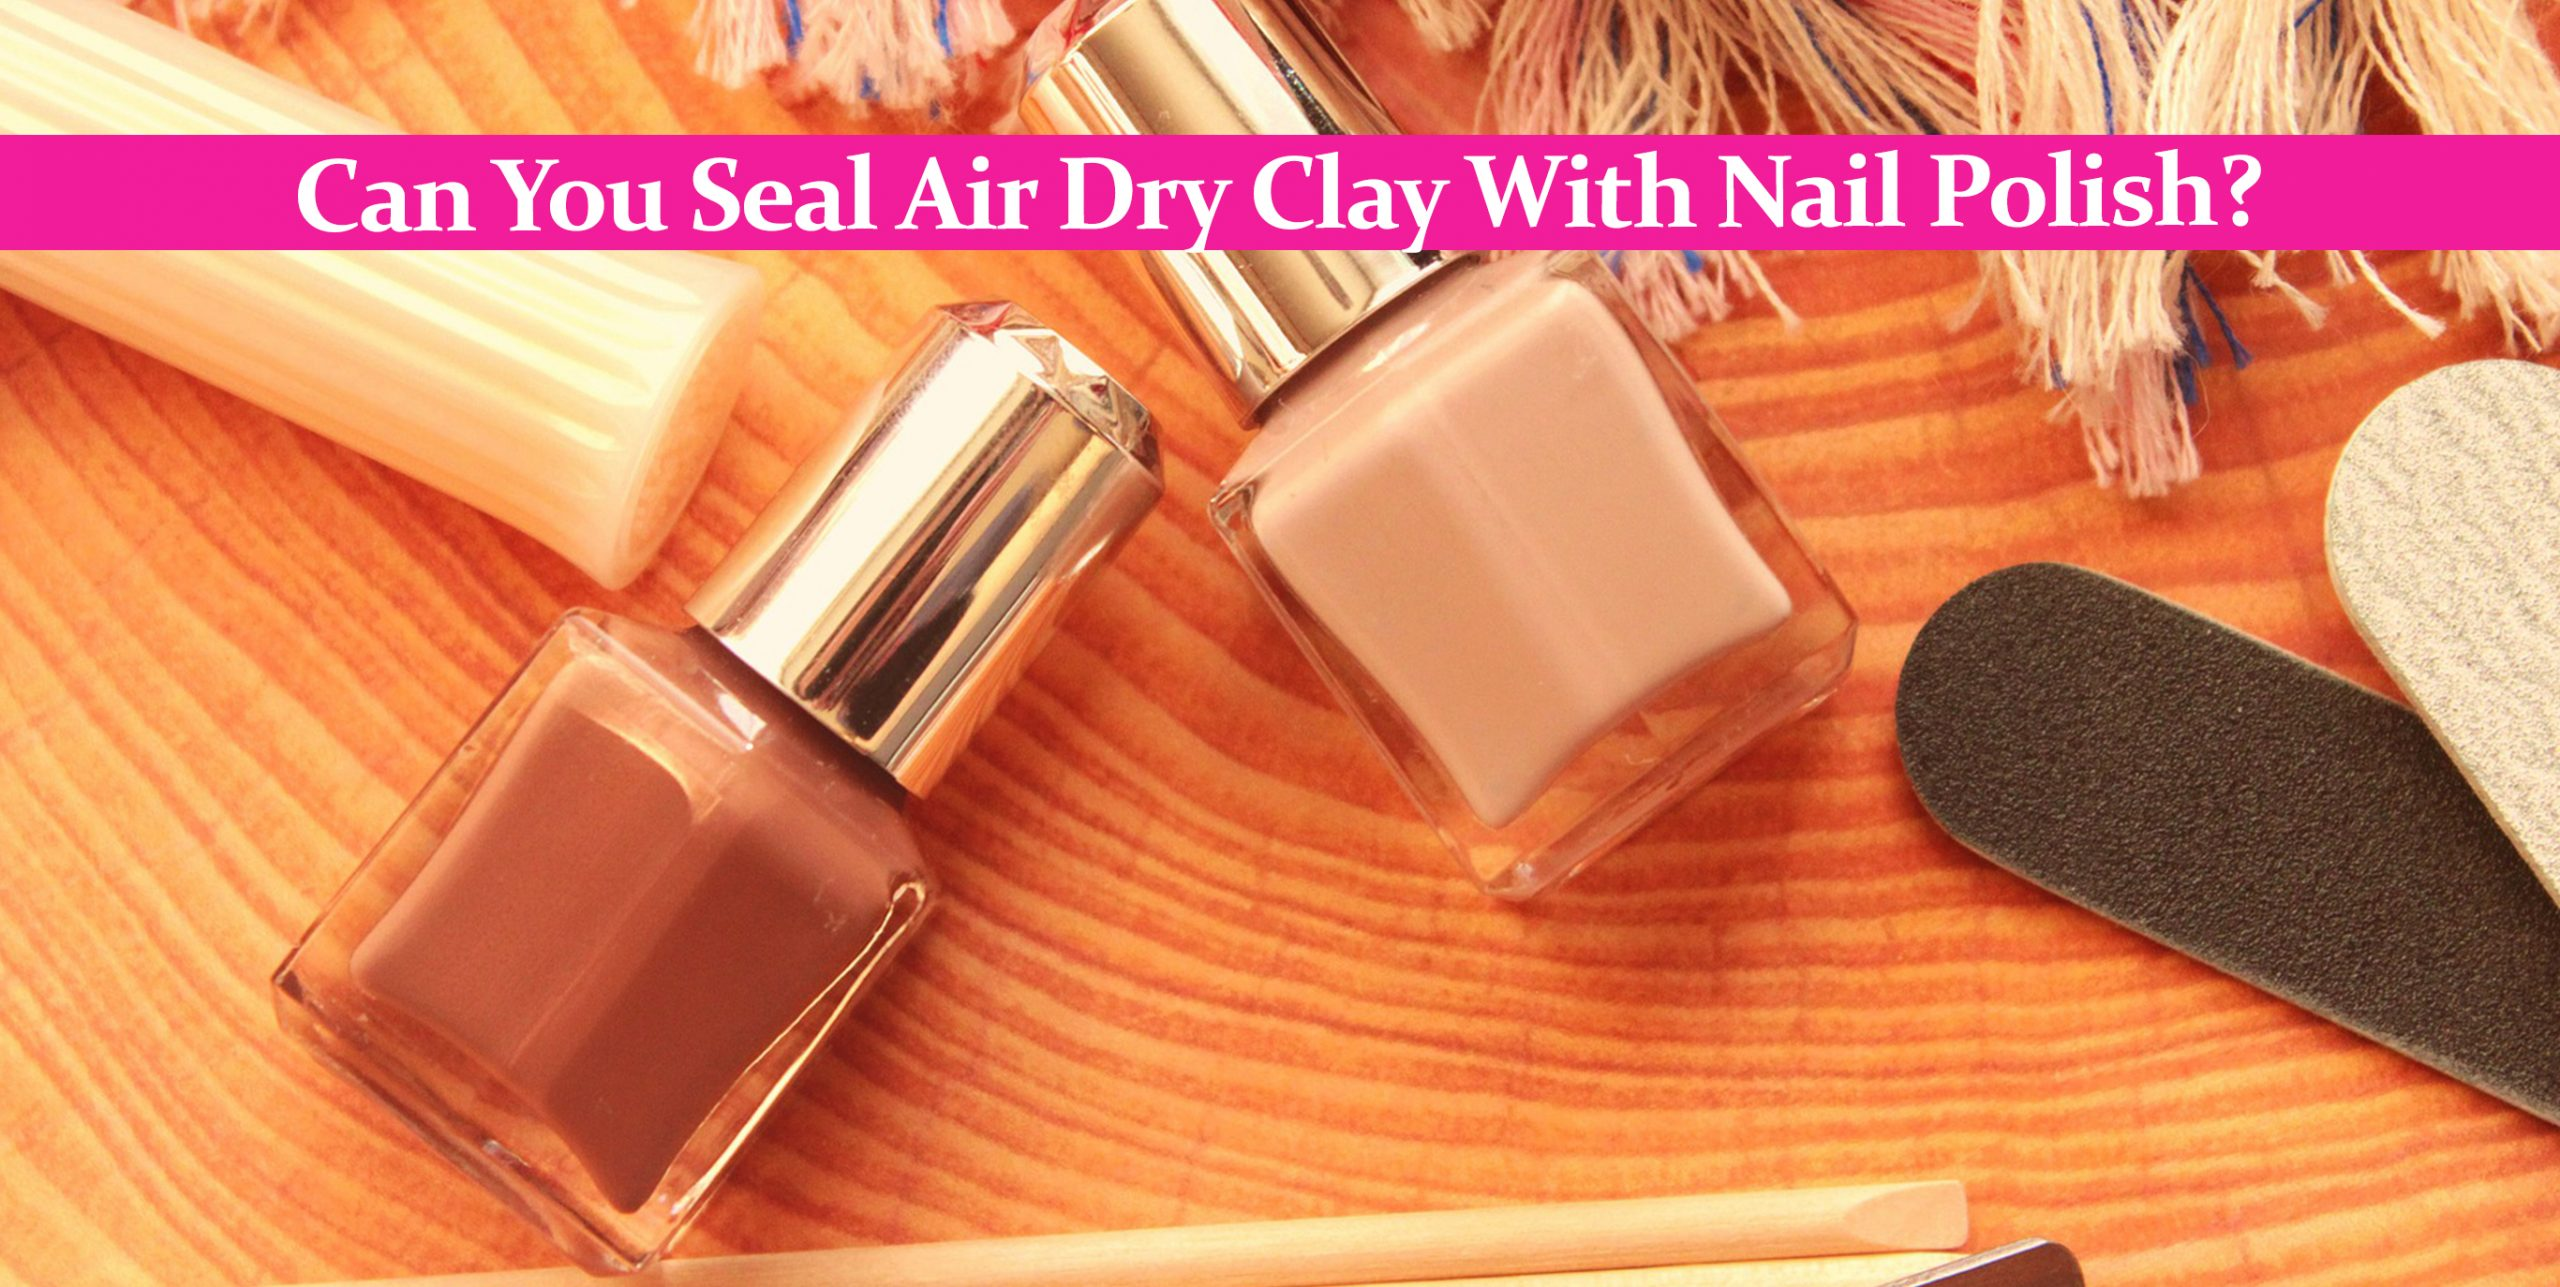 Can You Seal Air Dry Clay With Nail Polish?